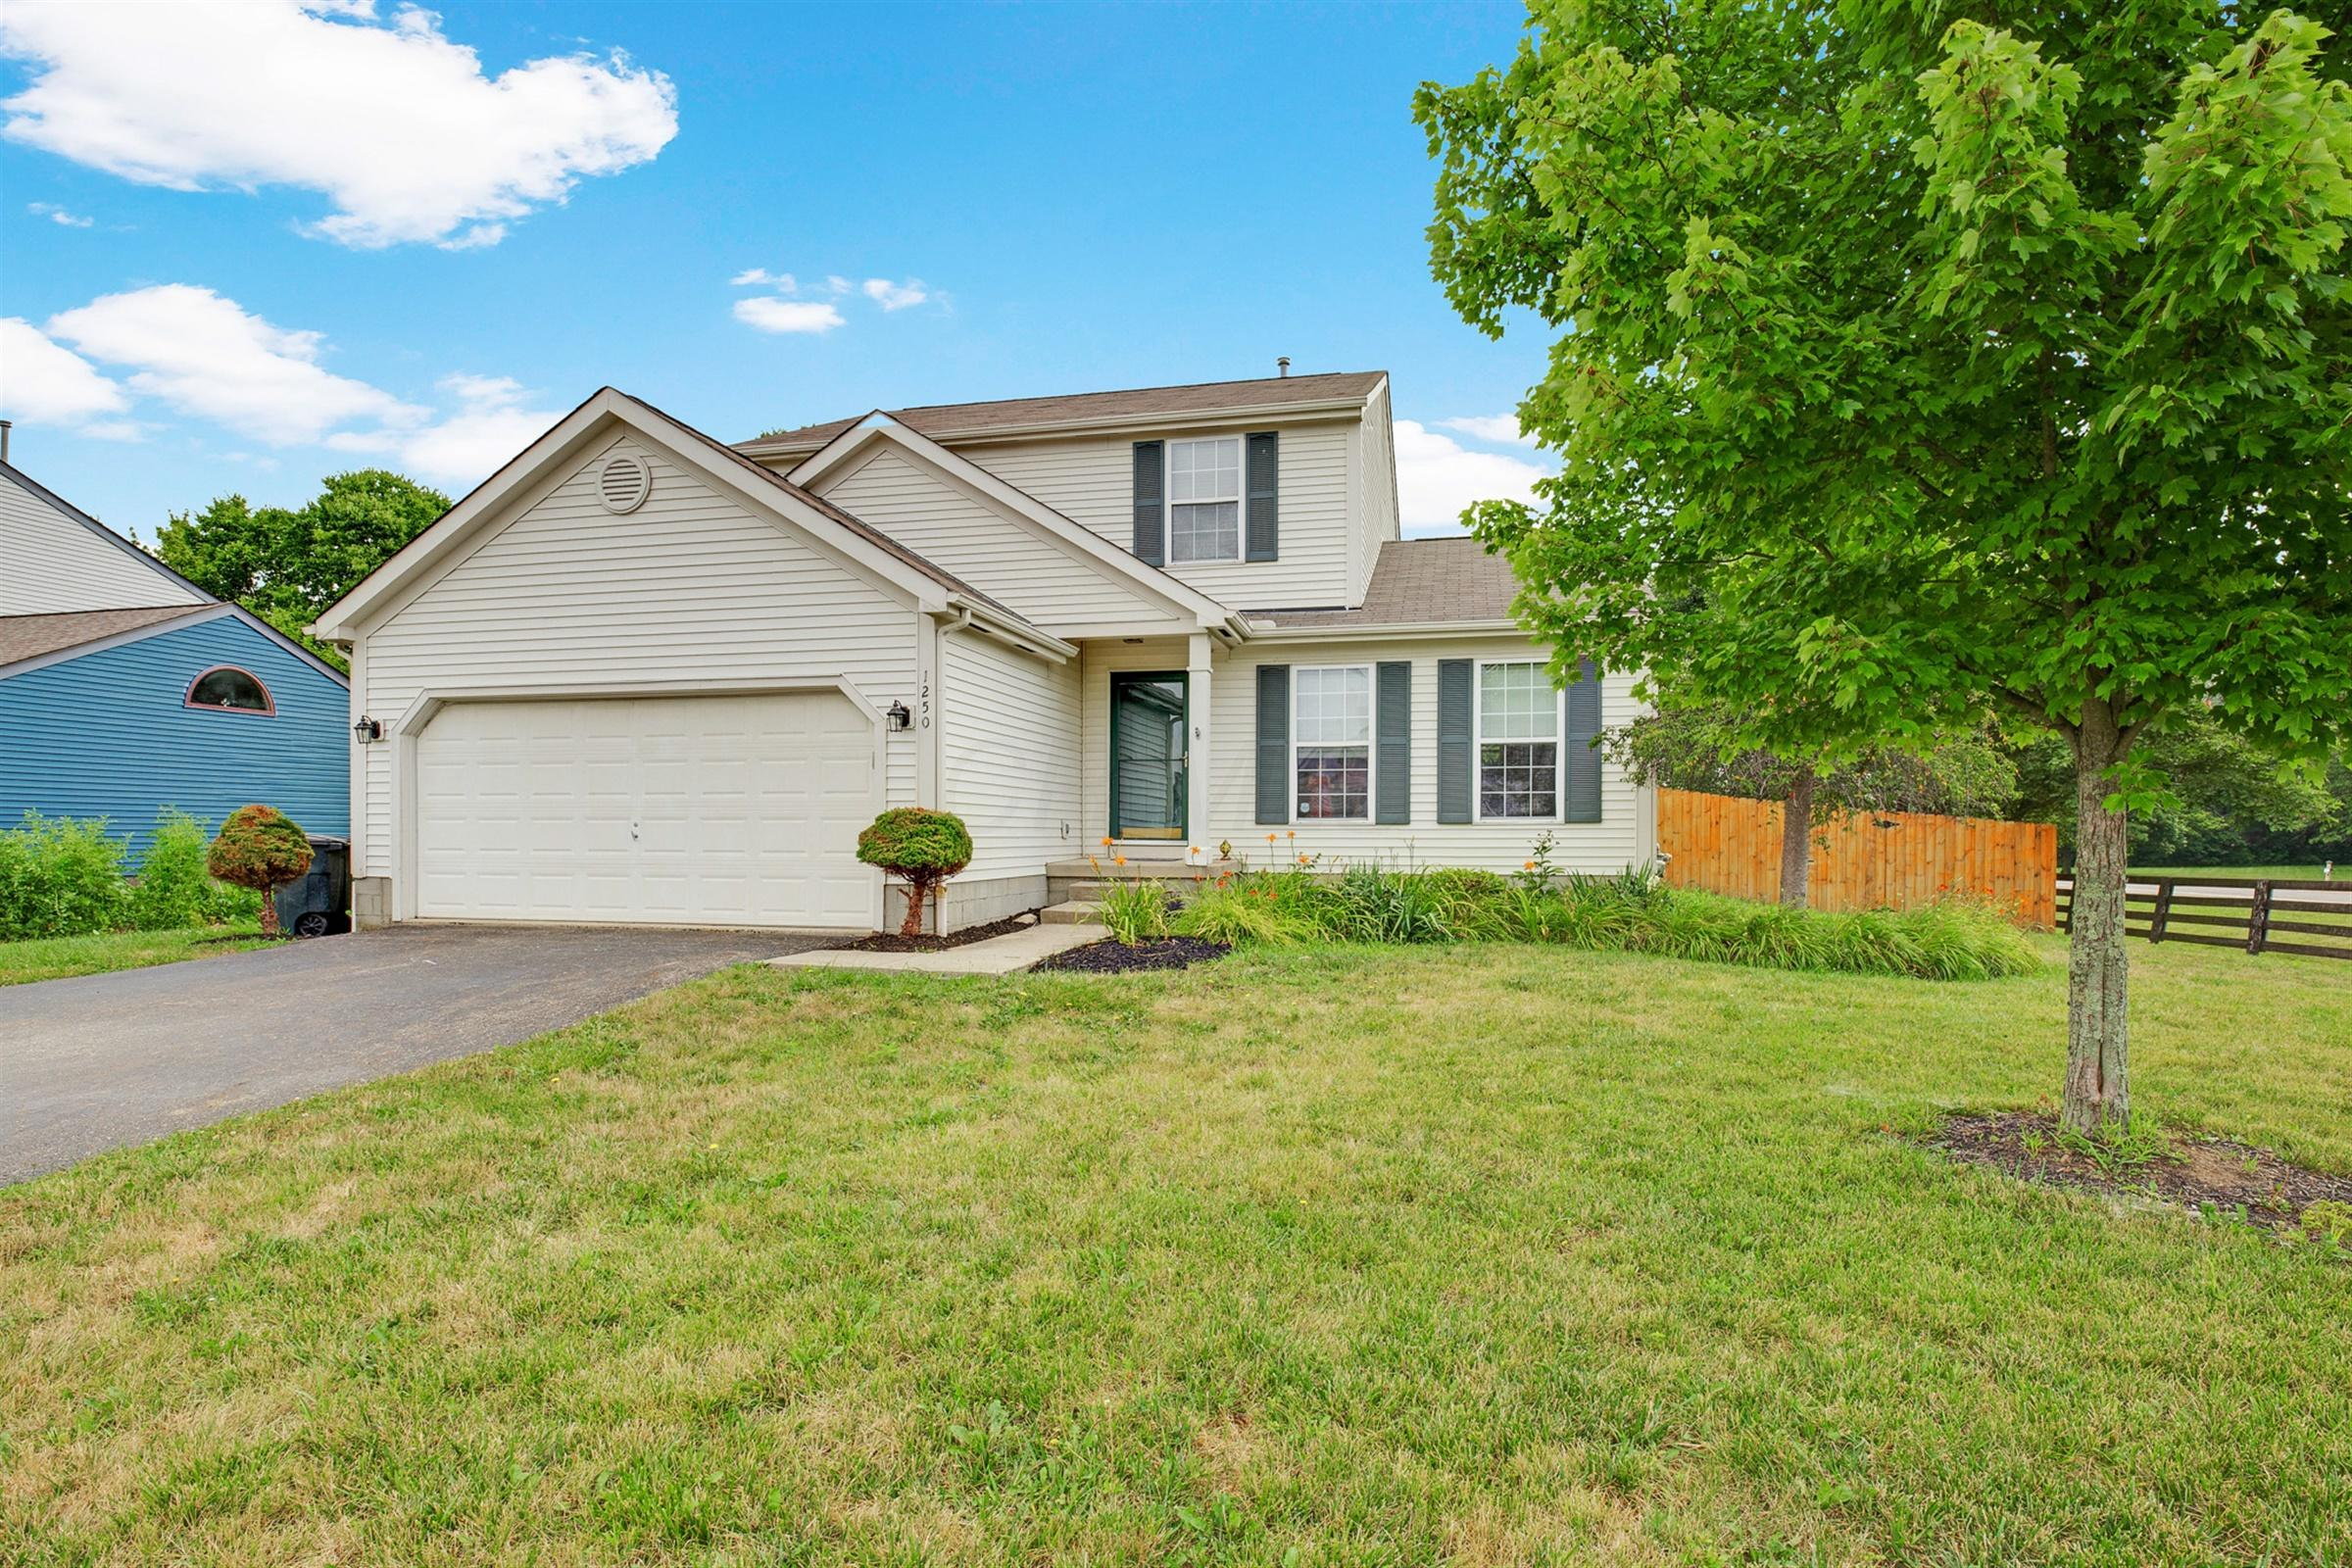 1250 Four Star Drive, Galloway, Ohio 43119, 3 Bedrooms Bedrooms, ,2 BathroomsBathrooms,Residential,For Sale,Four Star,220025181